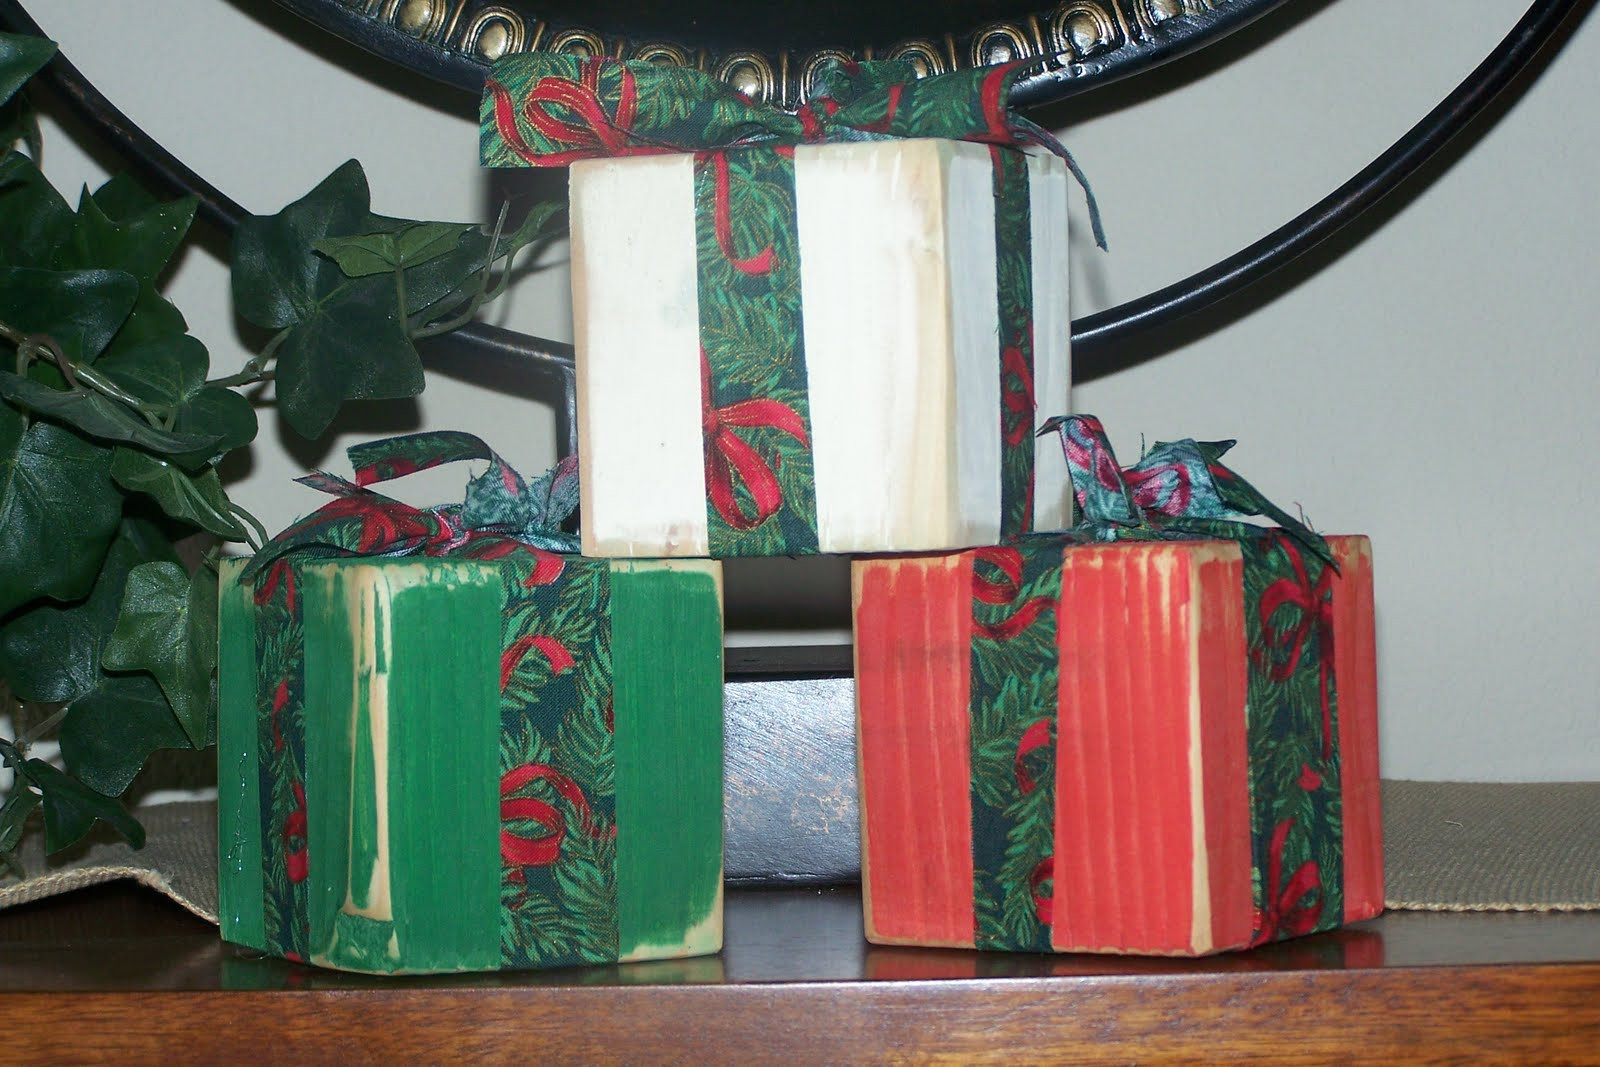 Best ideas about Christmas Wood Craft Projects . Save or Pin Too Cute n Crafty New Holiday Wood Crafts for 2010 Now.